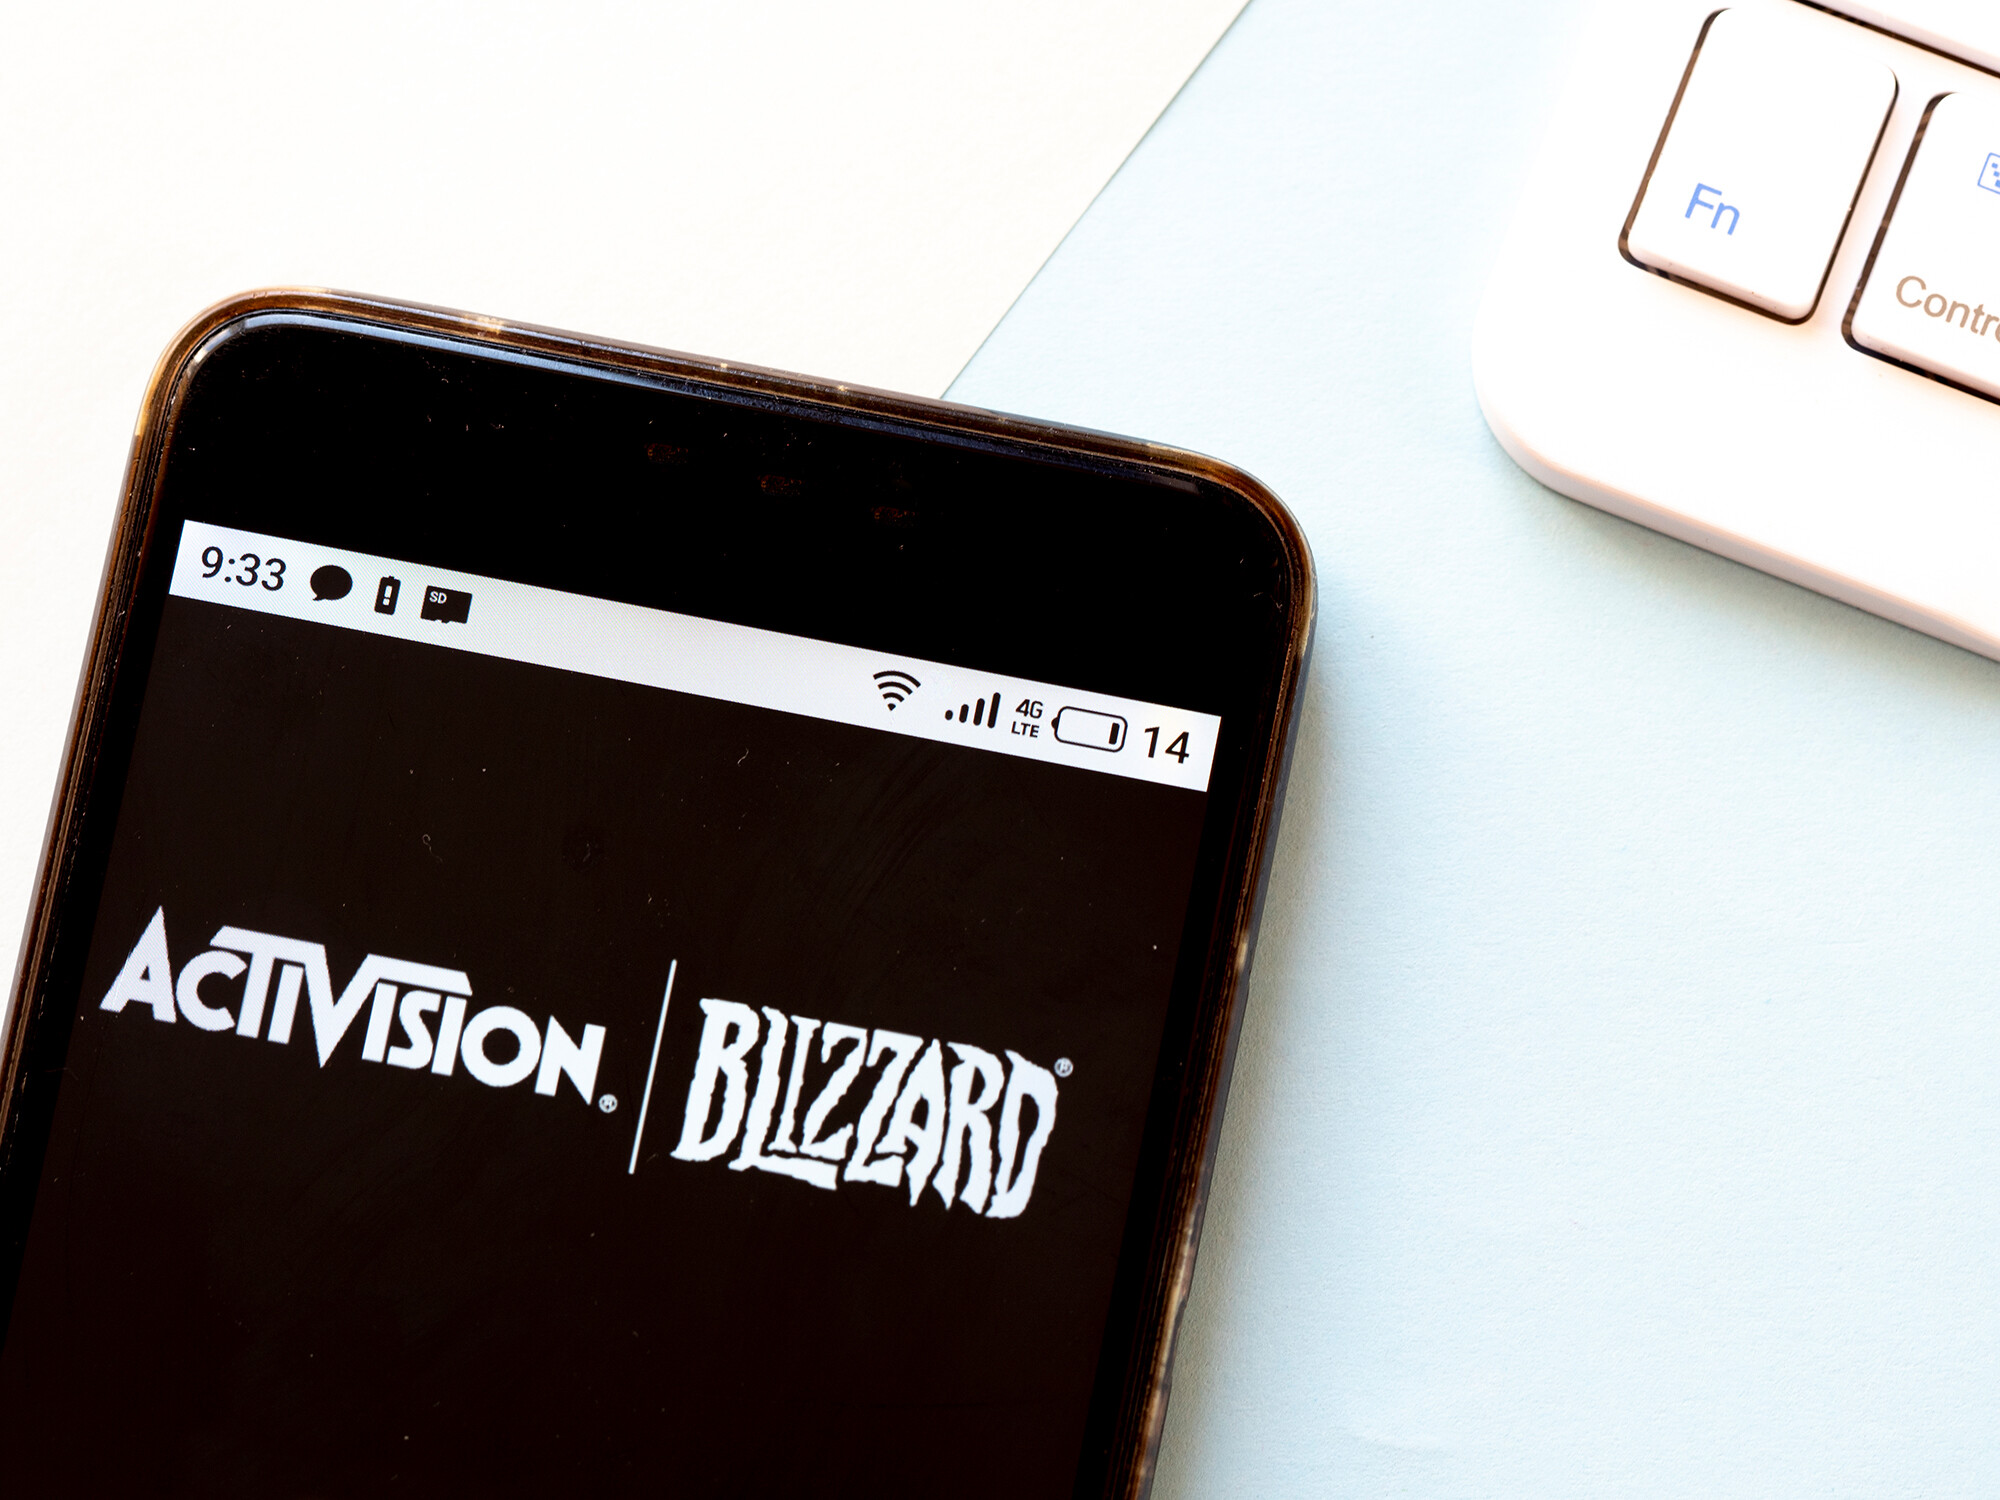 <i>Igor Golovniov/SOPA Images/LightRocket/Getty Images</i><br/>California's Department of Fair Employment and Housing filed a civil lawsuit July 21 against one of America's largest video game developers Activision Blizzard